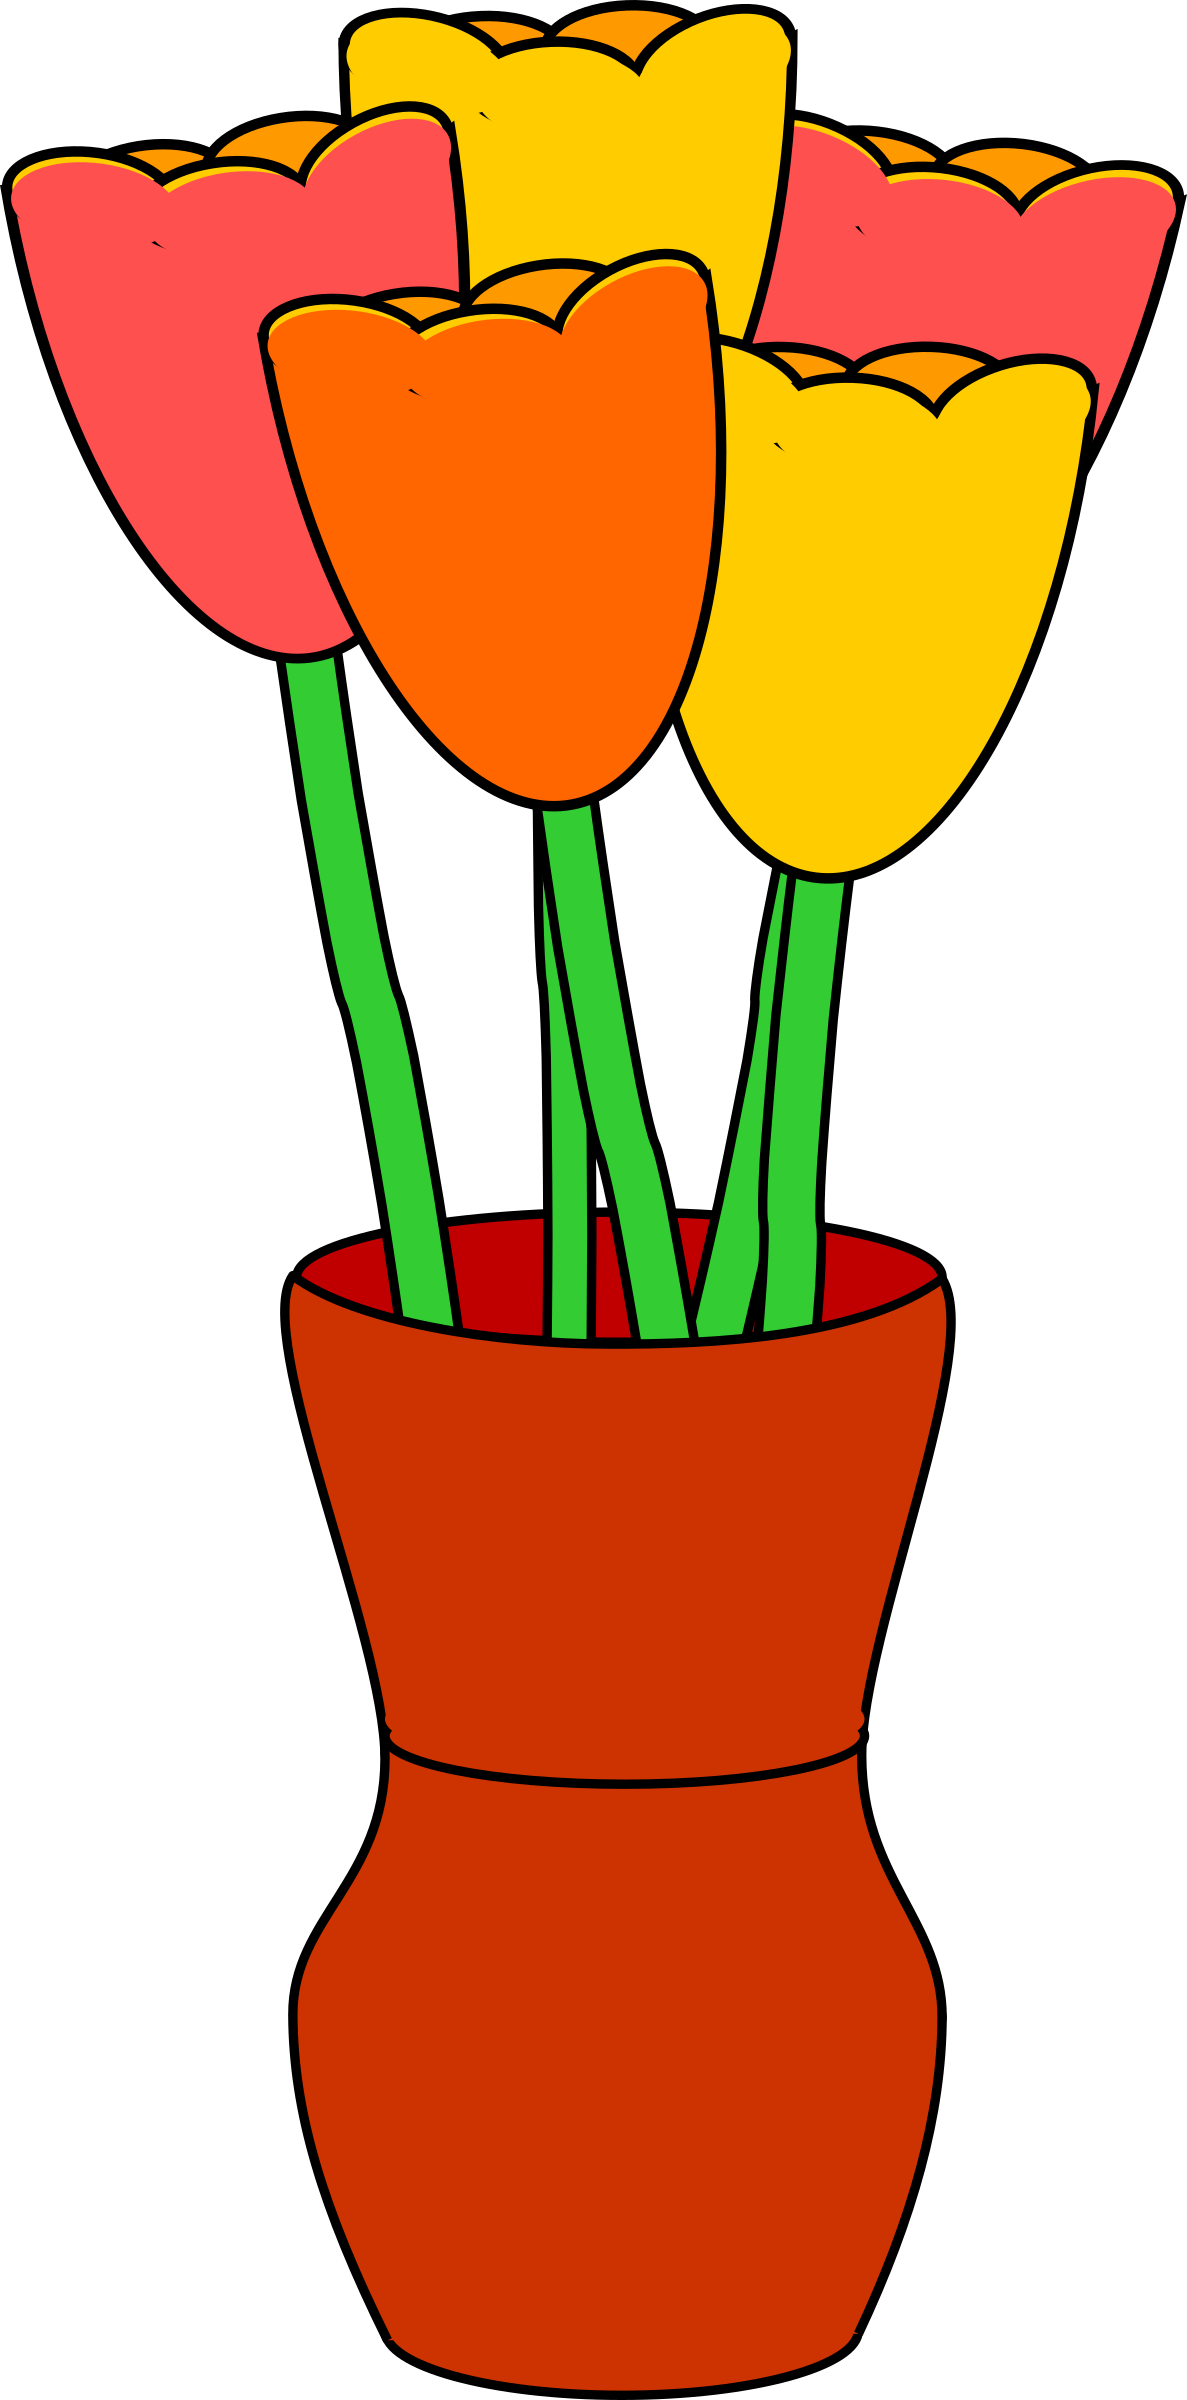 Brown vase with multicolored tulips by barnheartowl